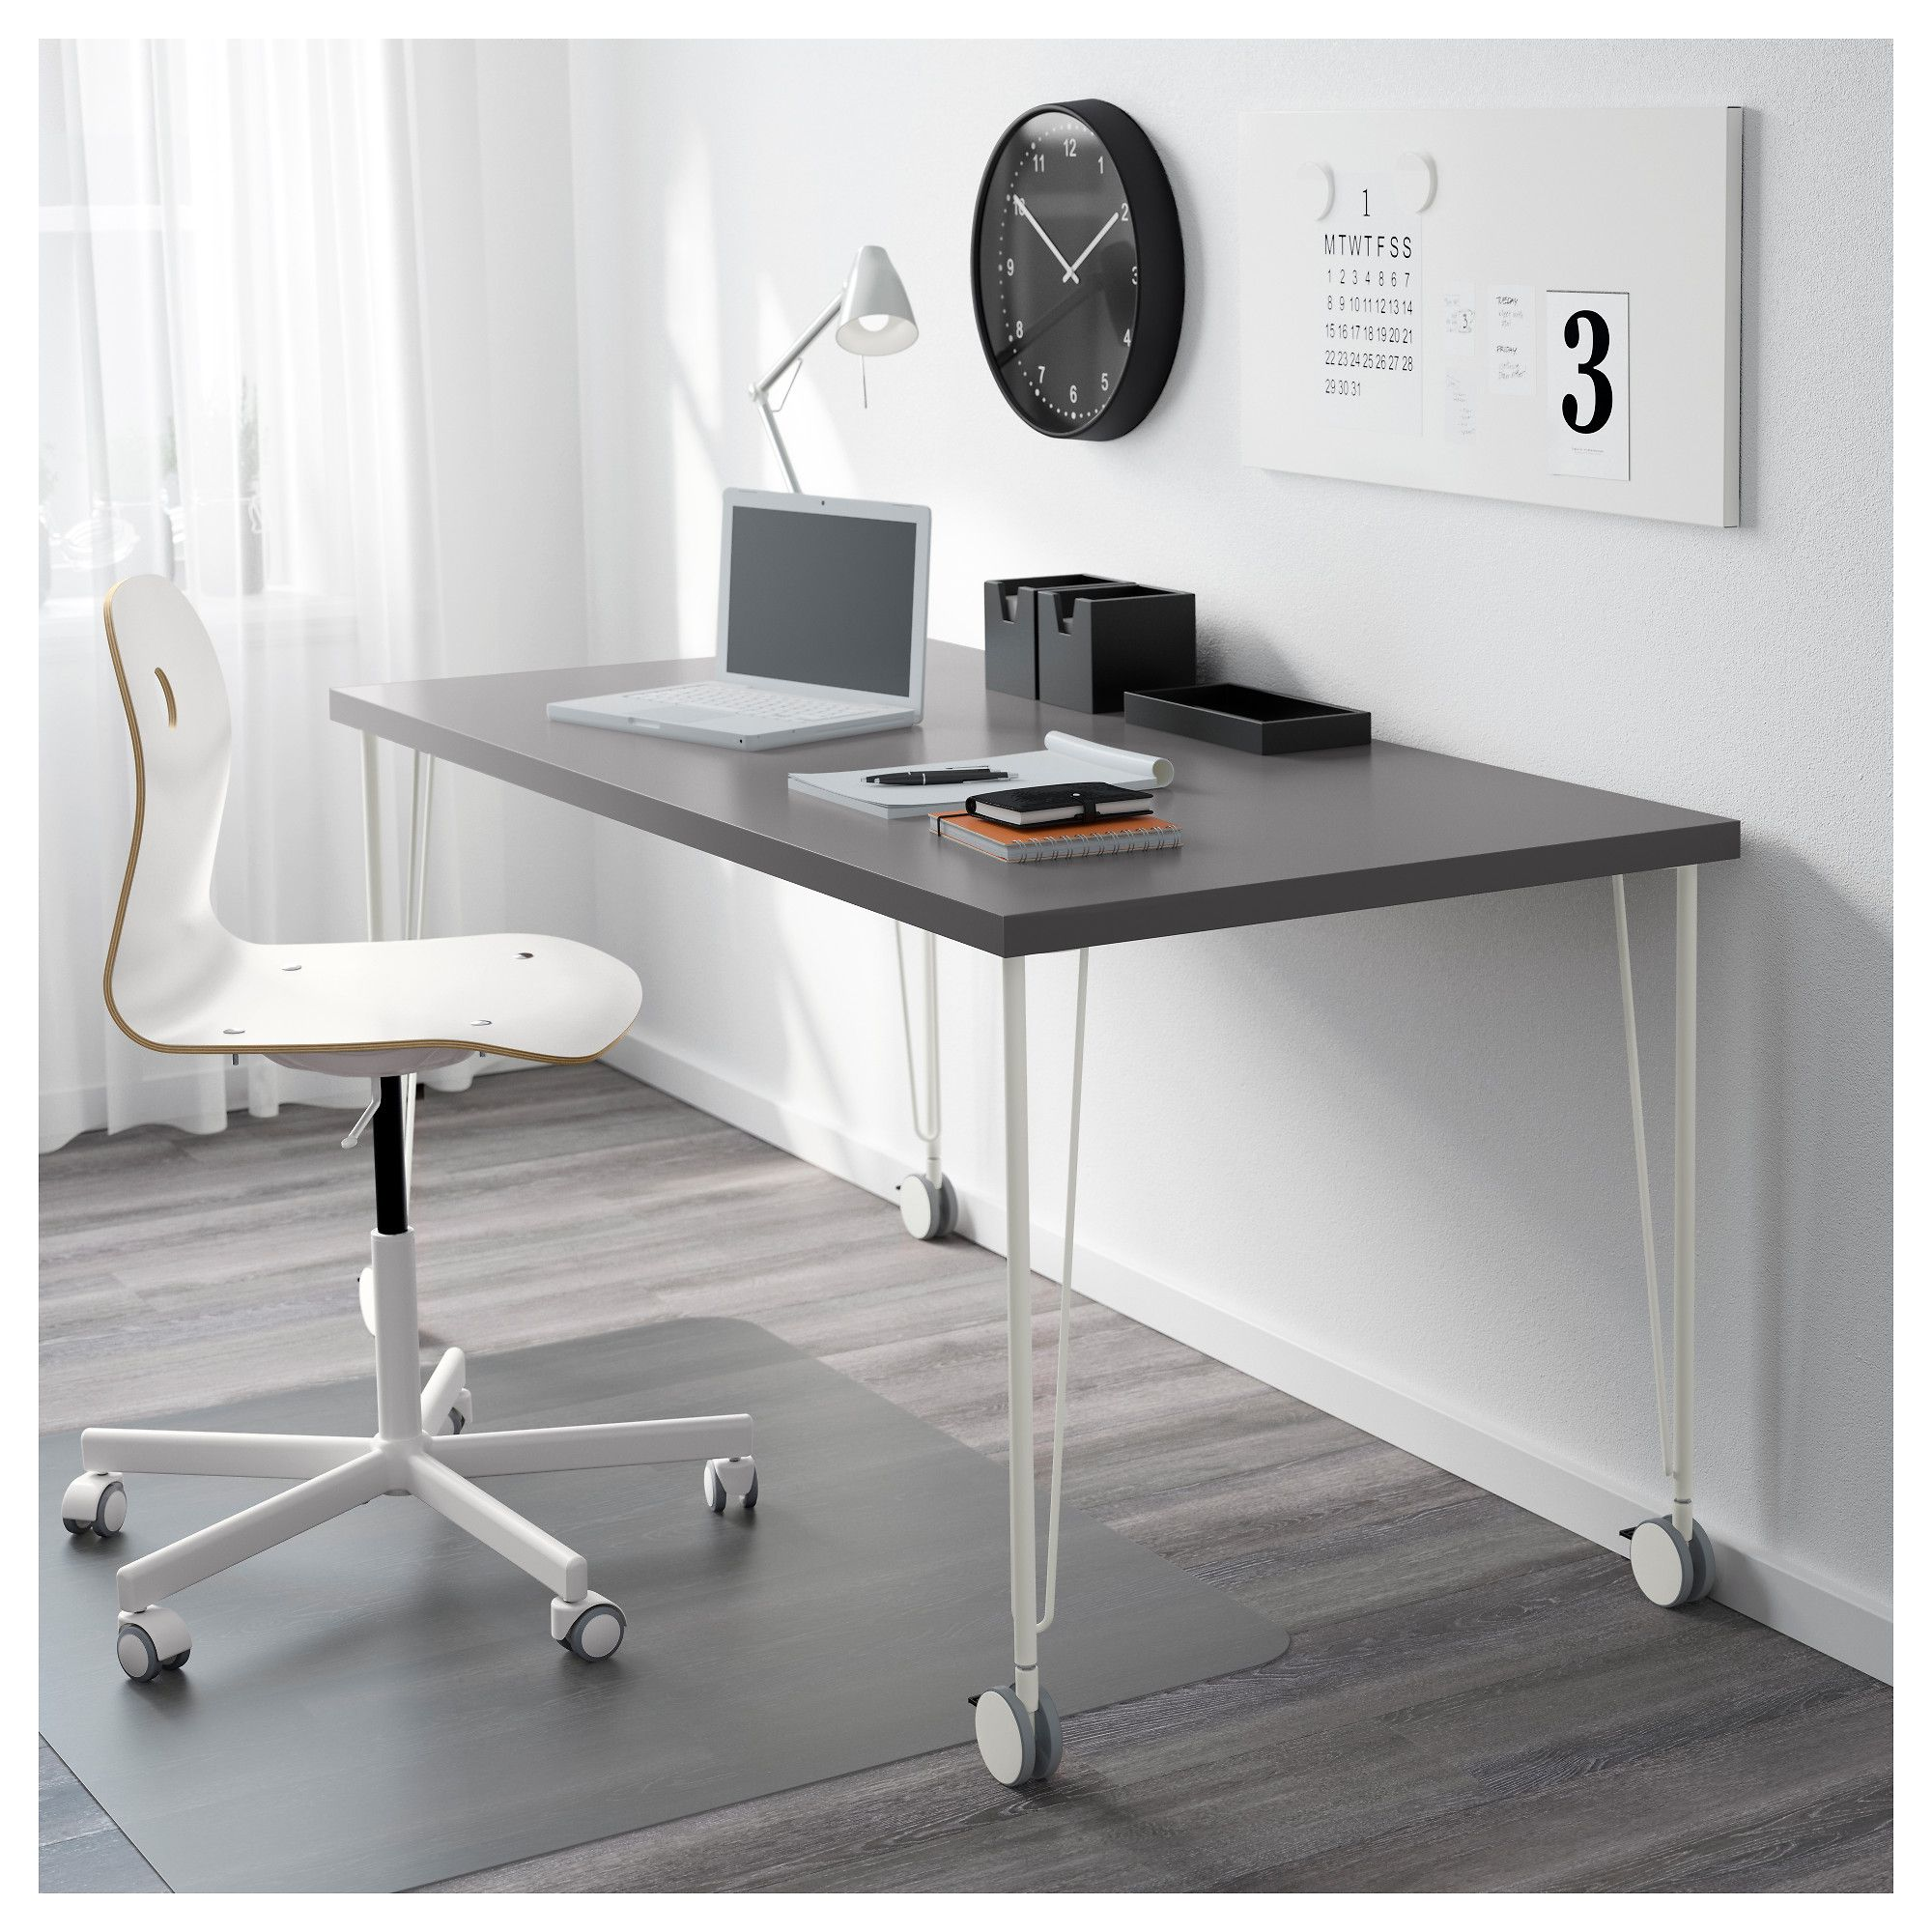 Shop for Furniture, Home Accessories & More Linnmon